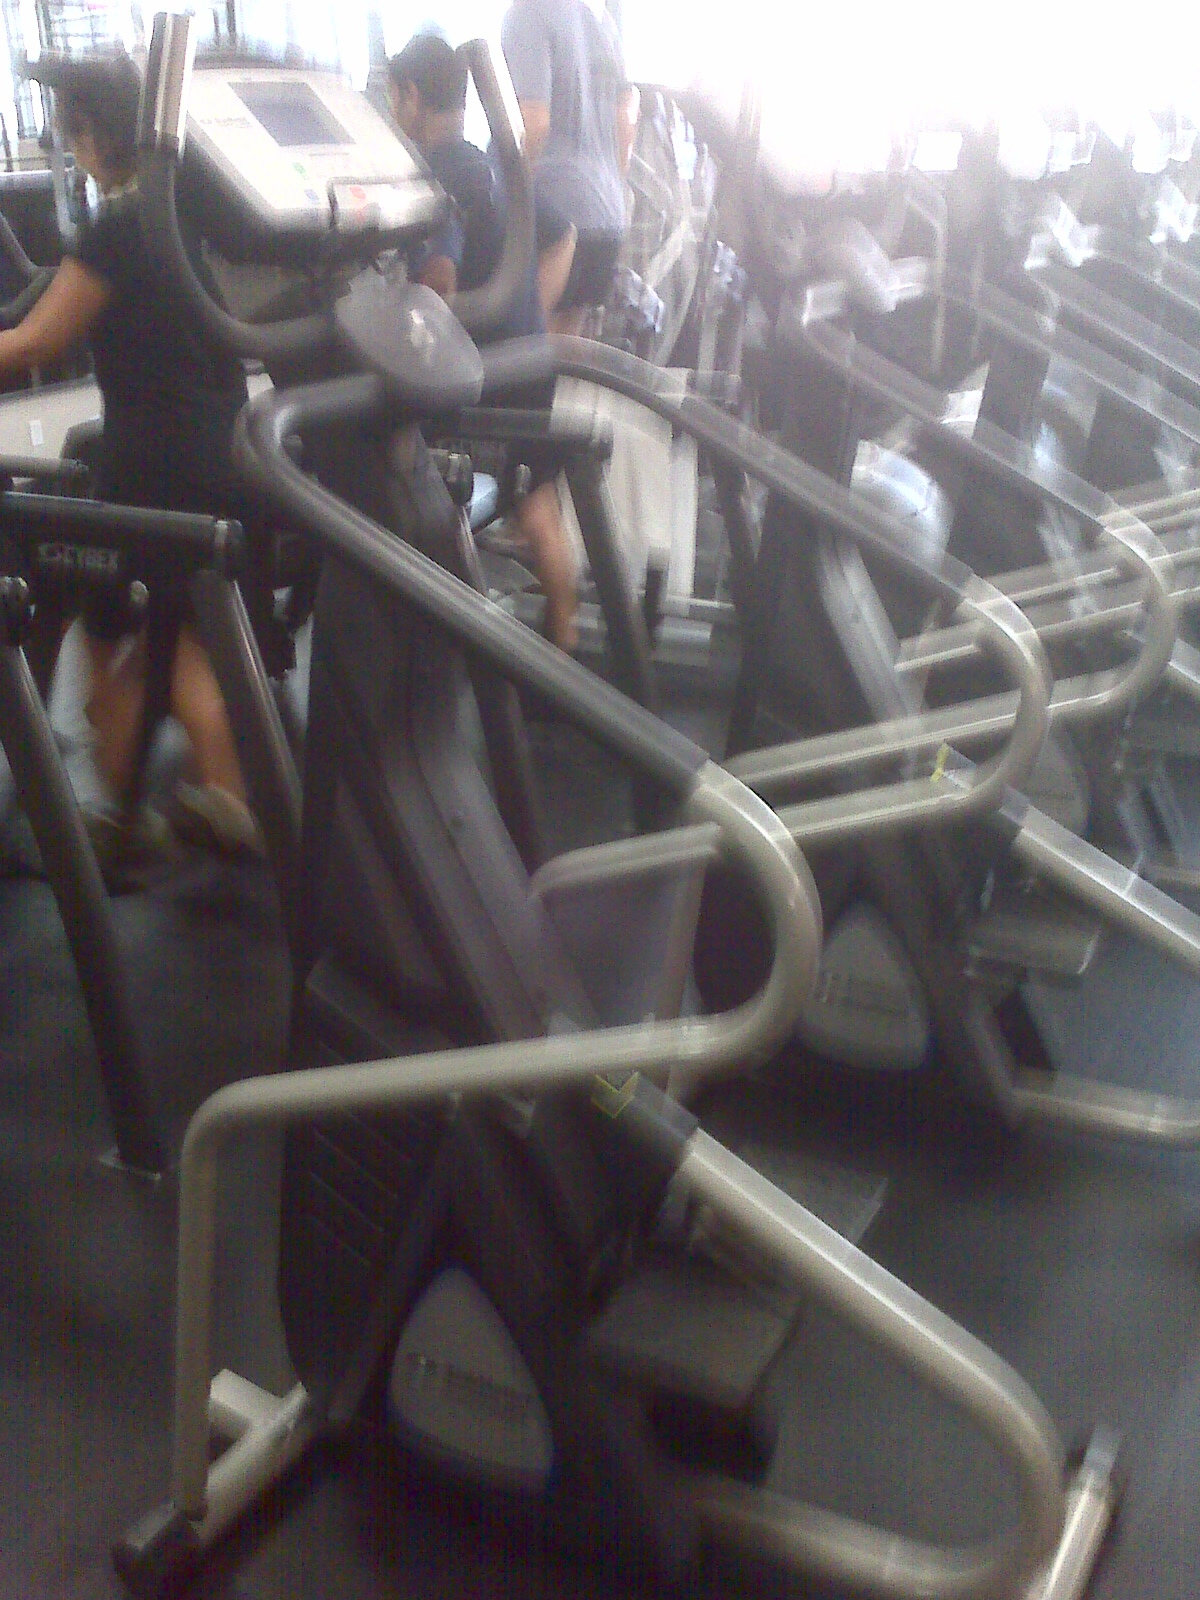 Thereu0027s This Type Of Stairmaster, Which Is The One That The Closer Location  Has: